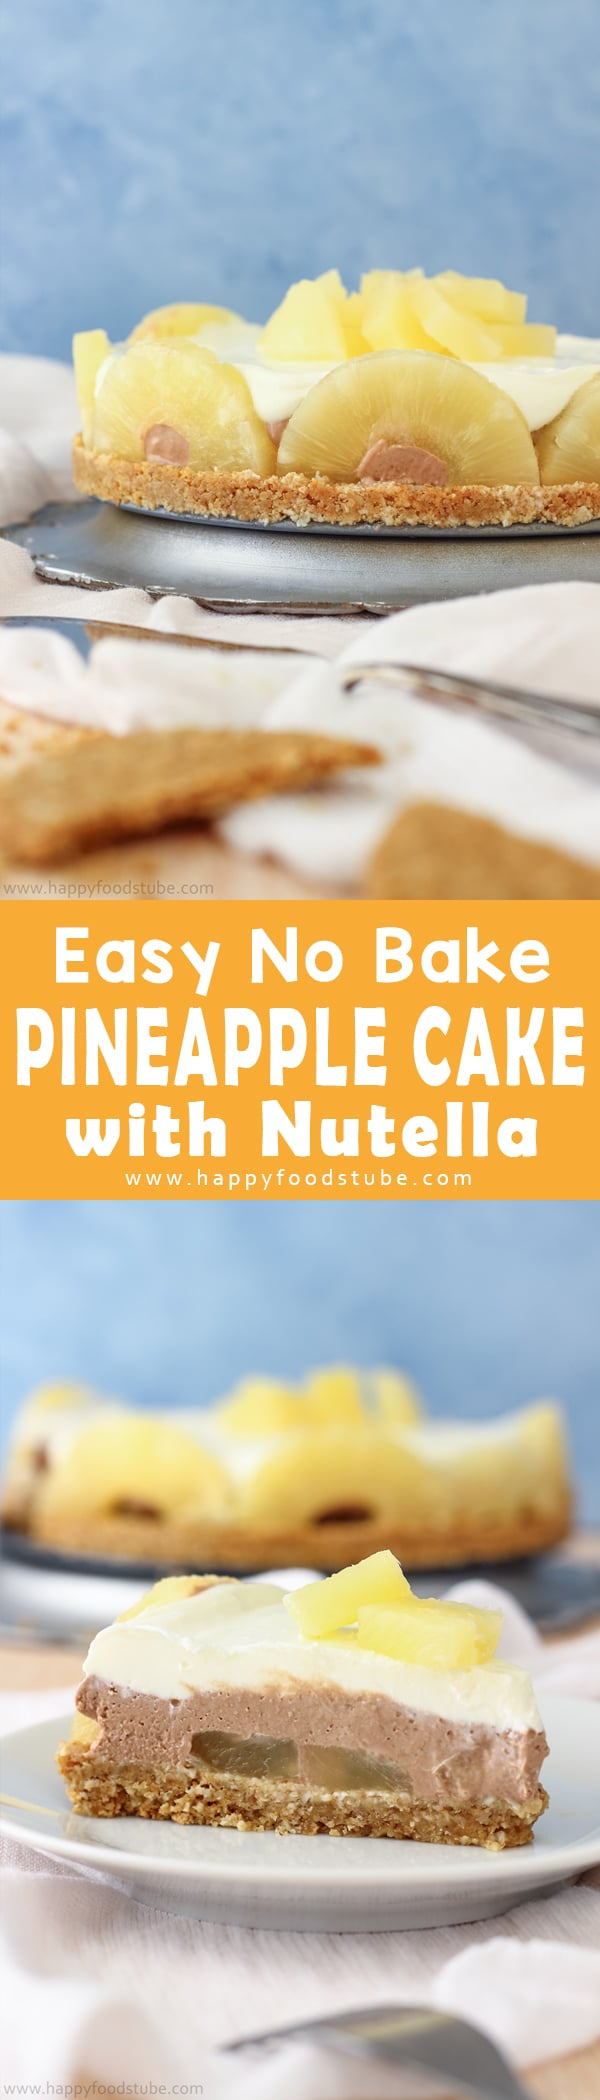 7-ingredients and 20-minutes is all it takes to make this no bake pineapple cake. It's an easy make-ahead dessert with pineapple pieces and Nutella layer. Best fridge cake recipe. Super easy to make dessert recipe.